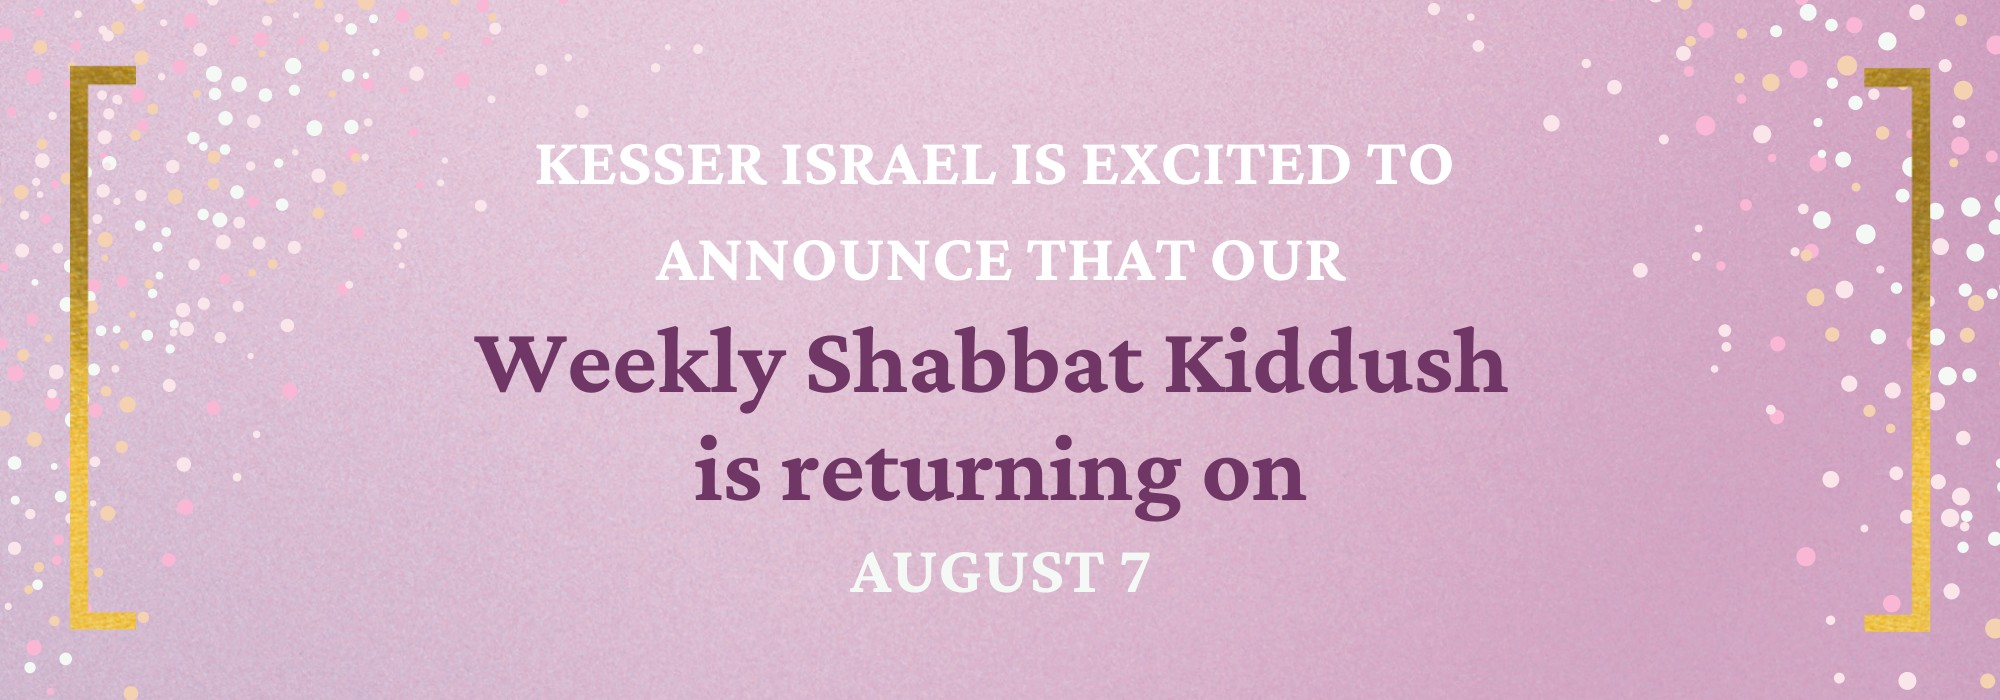 """<span class=""""slider_title"""">                                     Weekly Kiddush                                </span>                                                                                                                                                                                       <span class=""""slider_description"""">Sponsorship opportunities are available. We are also looking for cleanup volunteers to make our Kiddush possible. Email jjstiber@sbcglobal.net if you are interested in volunteering or sponsoring a Kiddush.</span>"""